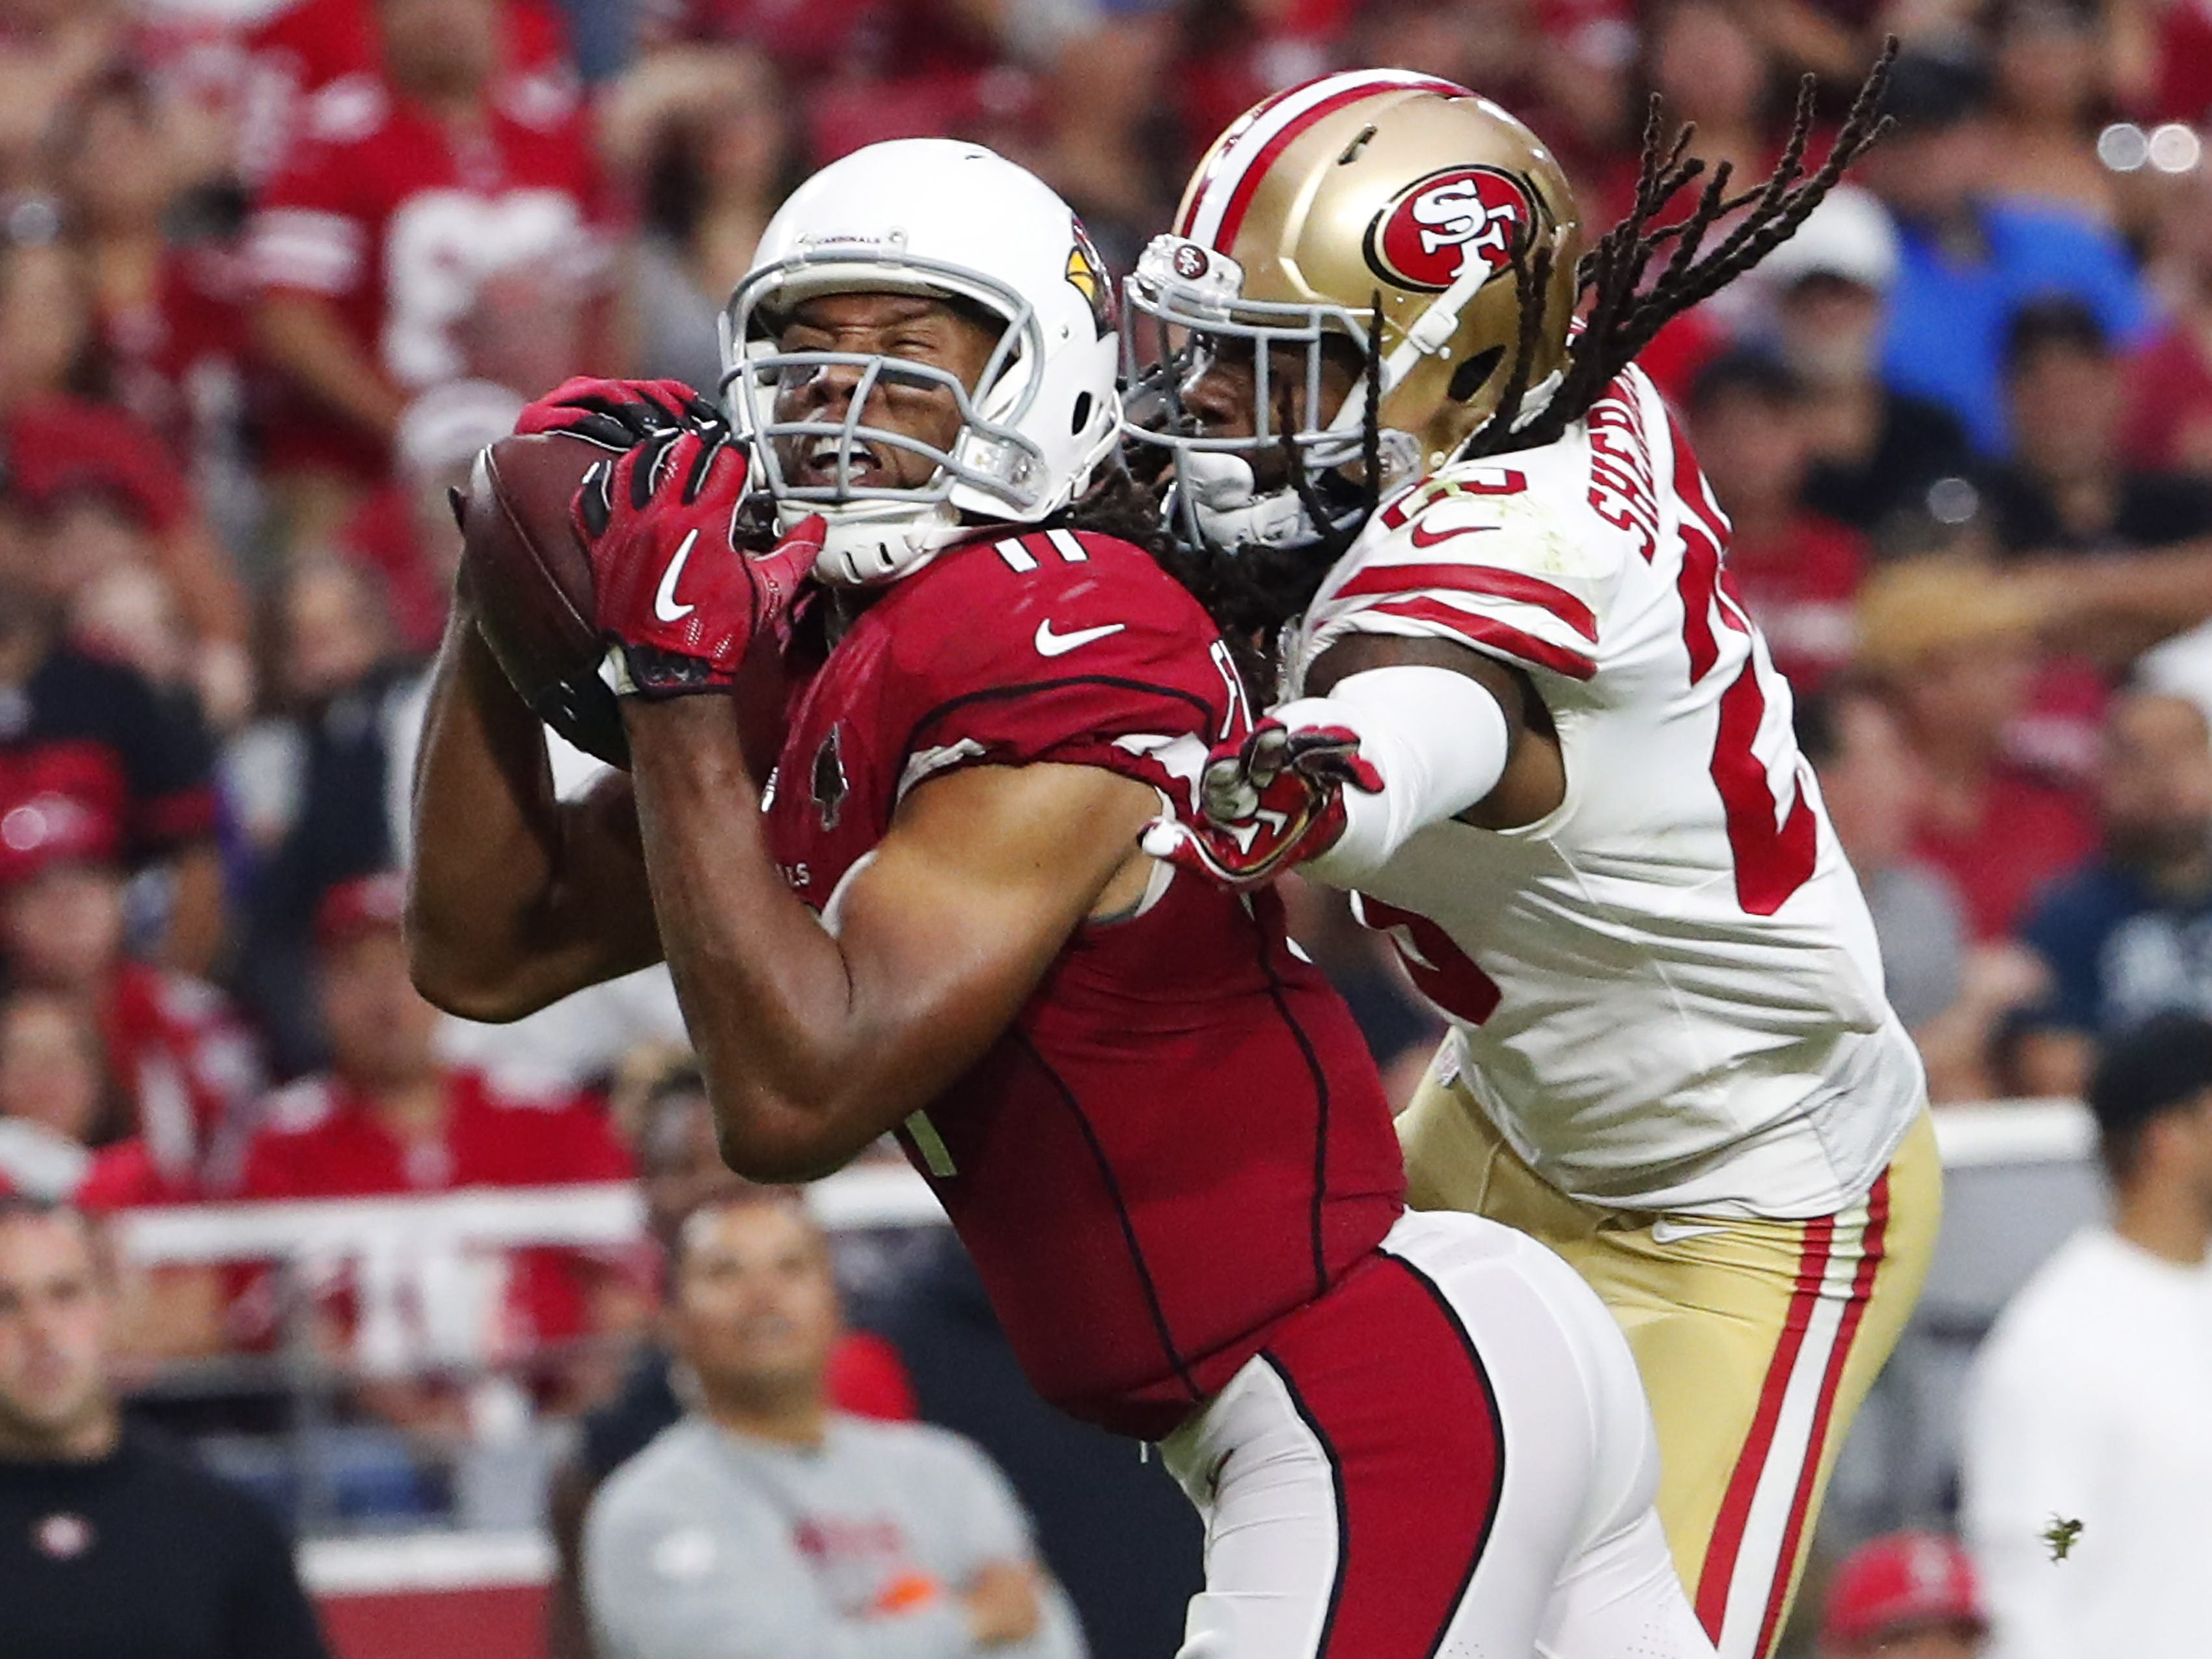 Arizona Cardinals wide receiver Larry Fitzgerald (11) catches a pass against San Francisco 49ers cornerback Richard Sherman (25) in the fourth quarter during NFL action on Oct. 28 at State Farm Stadium.